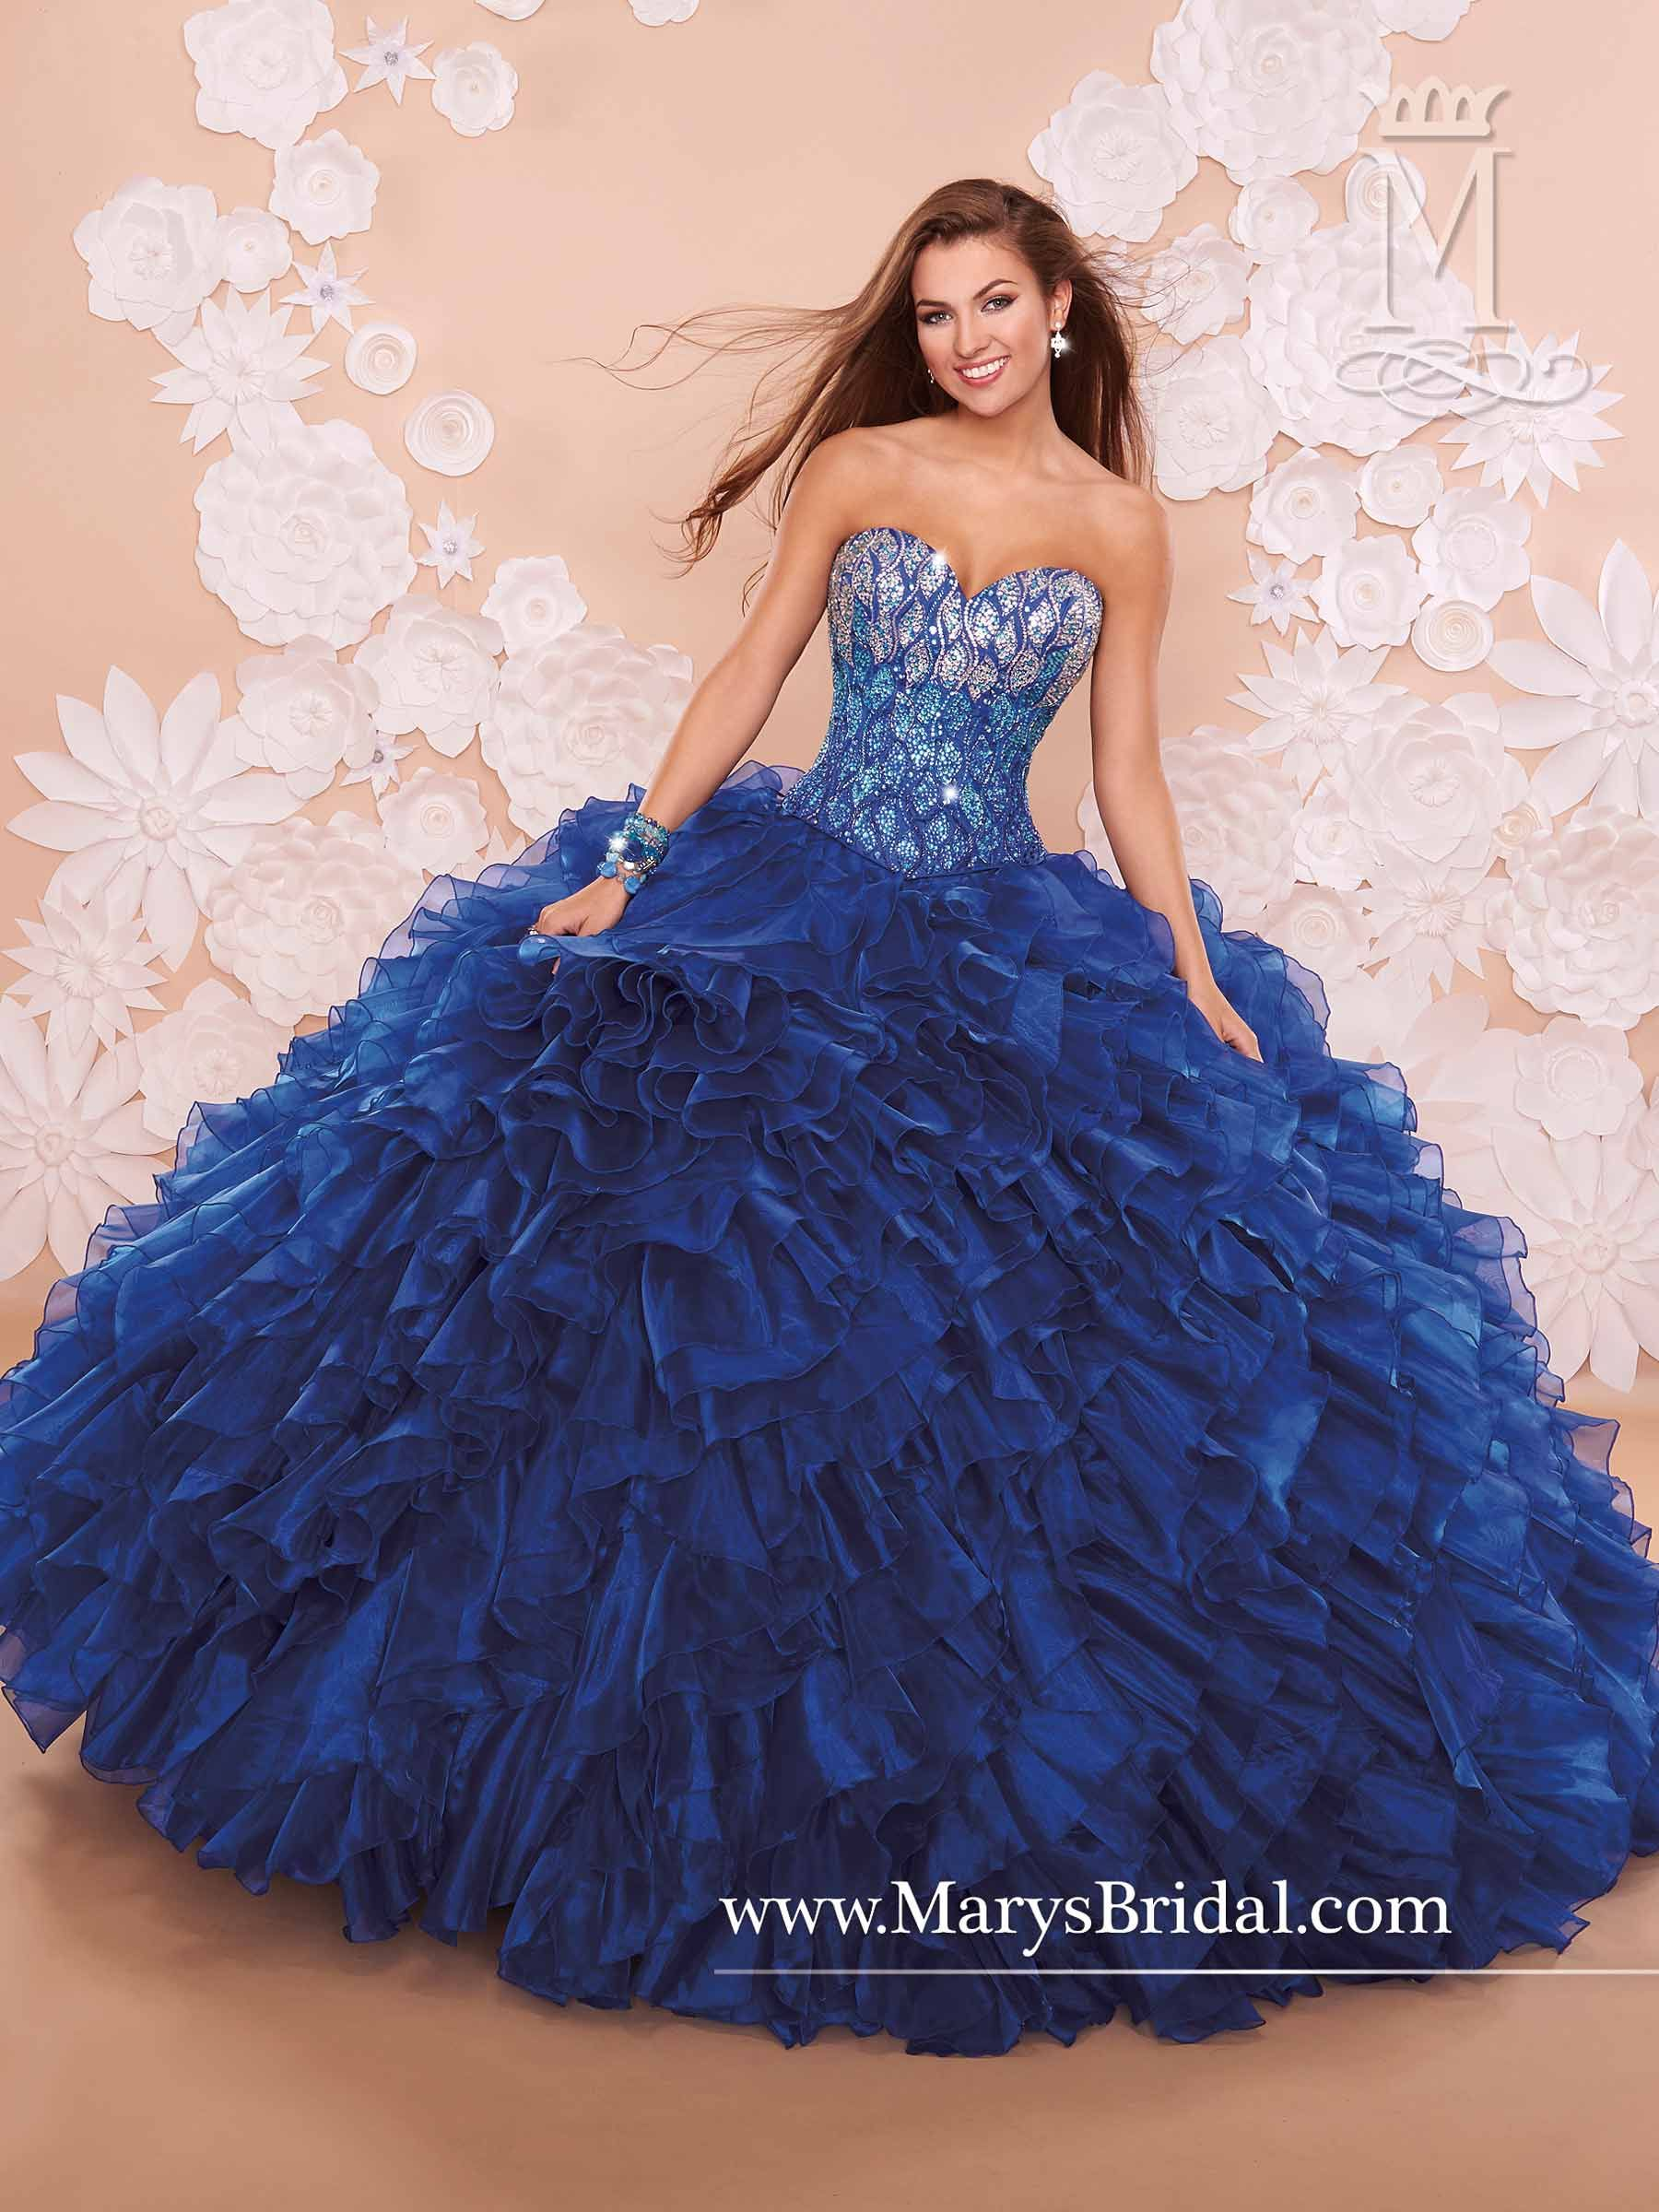 8263a52dd00 2 piece strapless organza Navy Blue Quinceanera Dresses